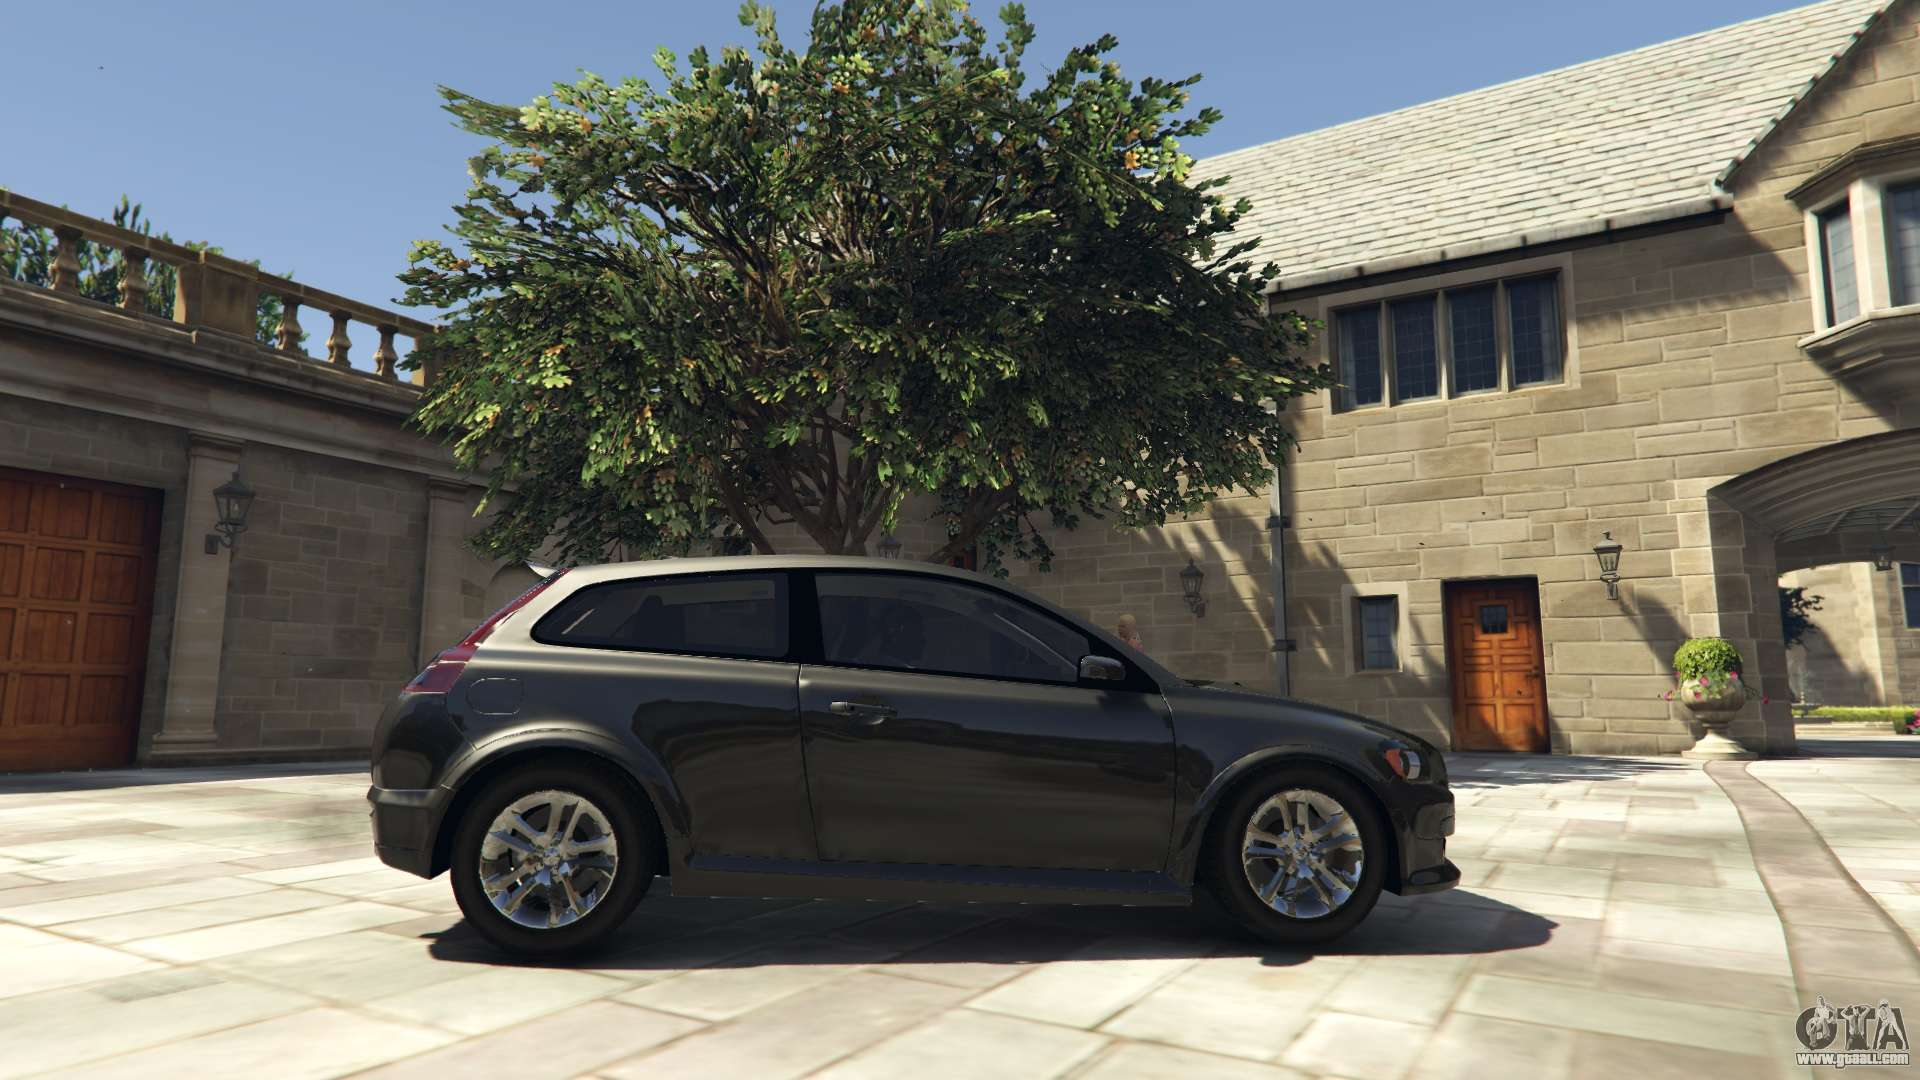 Unmarked Police Car Gta 5 - Gta 5 volvo c30 unmarked police left side view